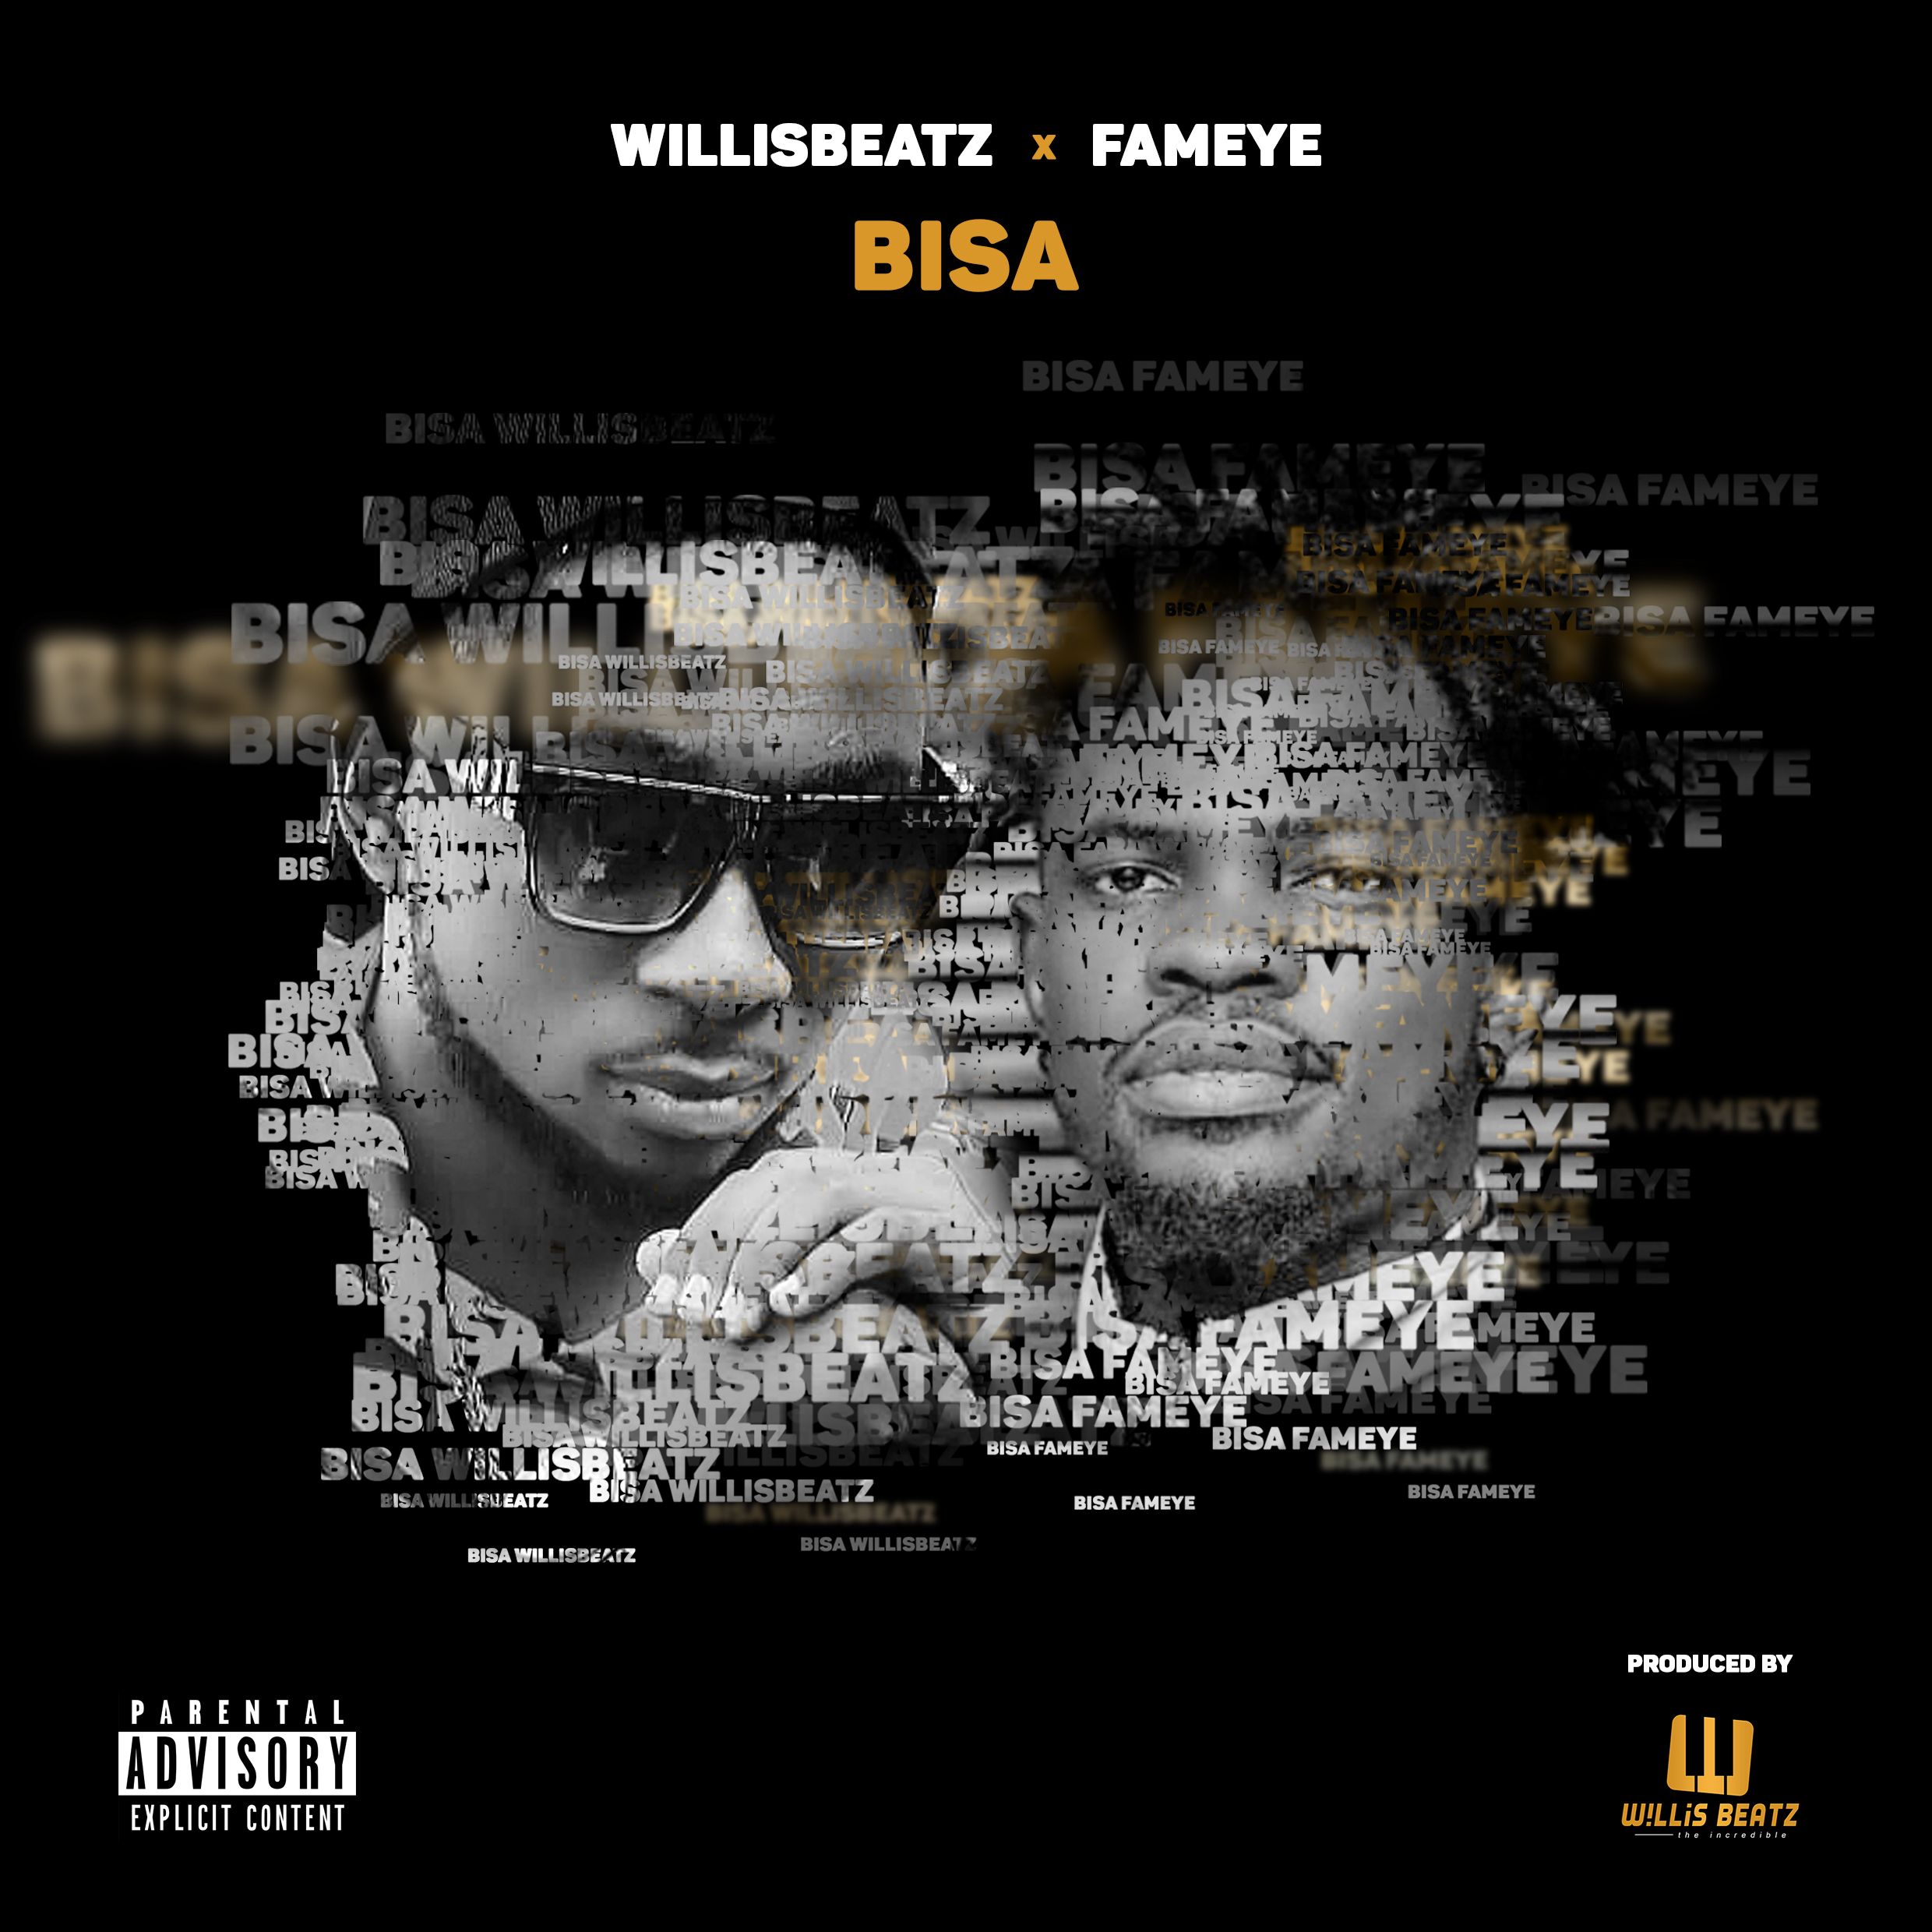 WillisBeatz x Fameye – Bisa (Prod. By WillisBeatz)